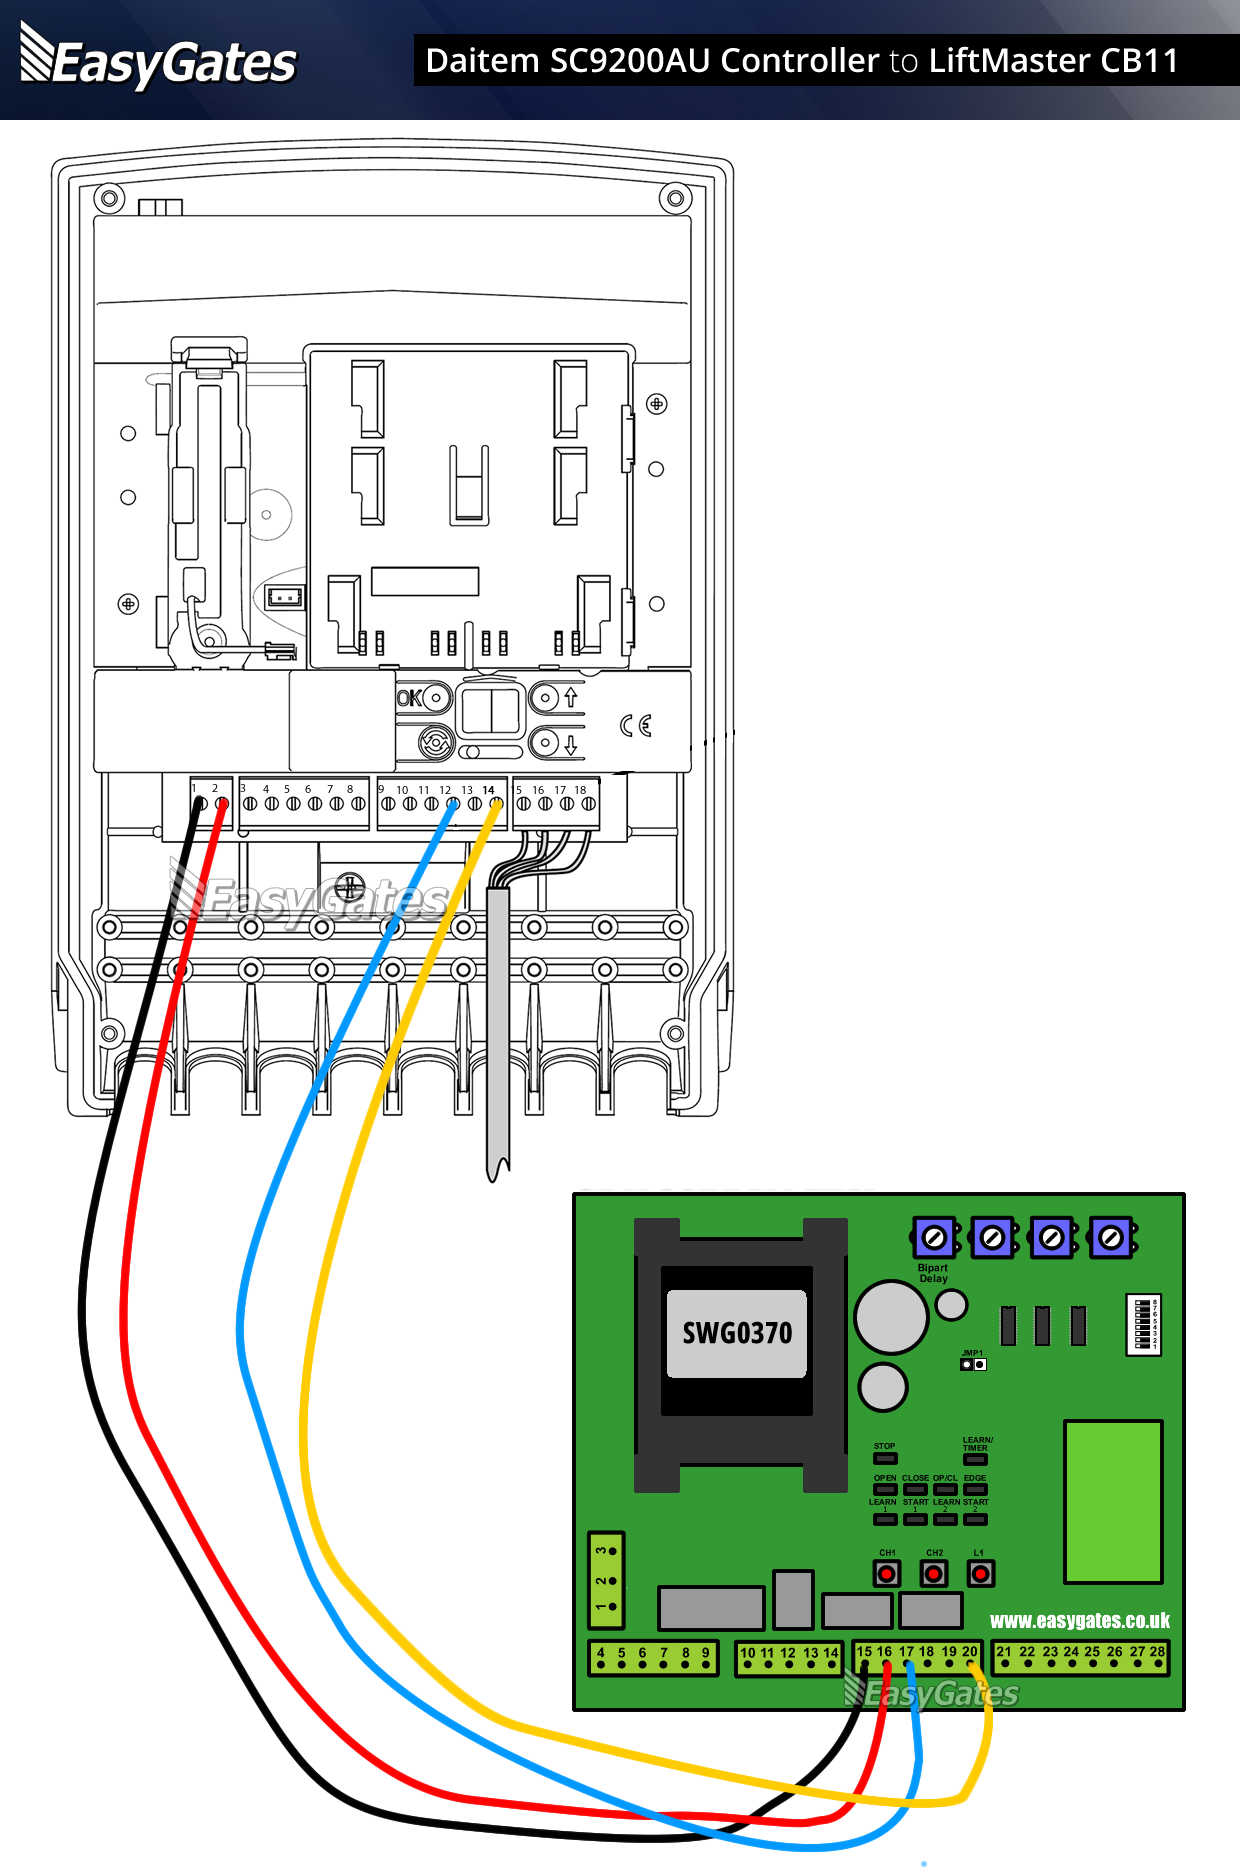 lift master wiring diagram lift automotive wiring diagrams lift master wiring diagram daitem sc200au to cb11 panel flattened